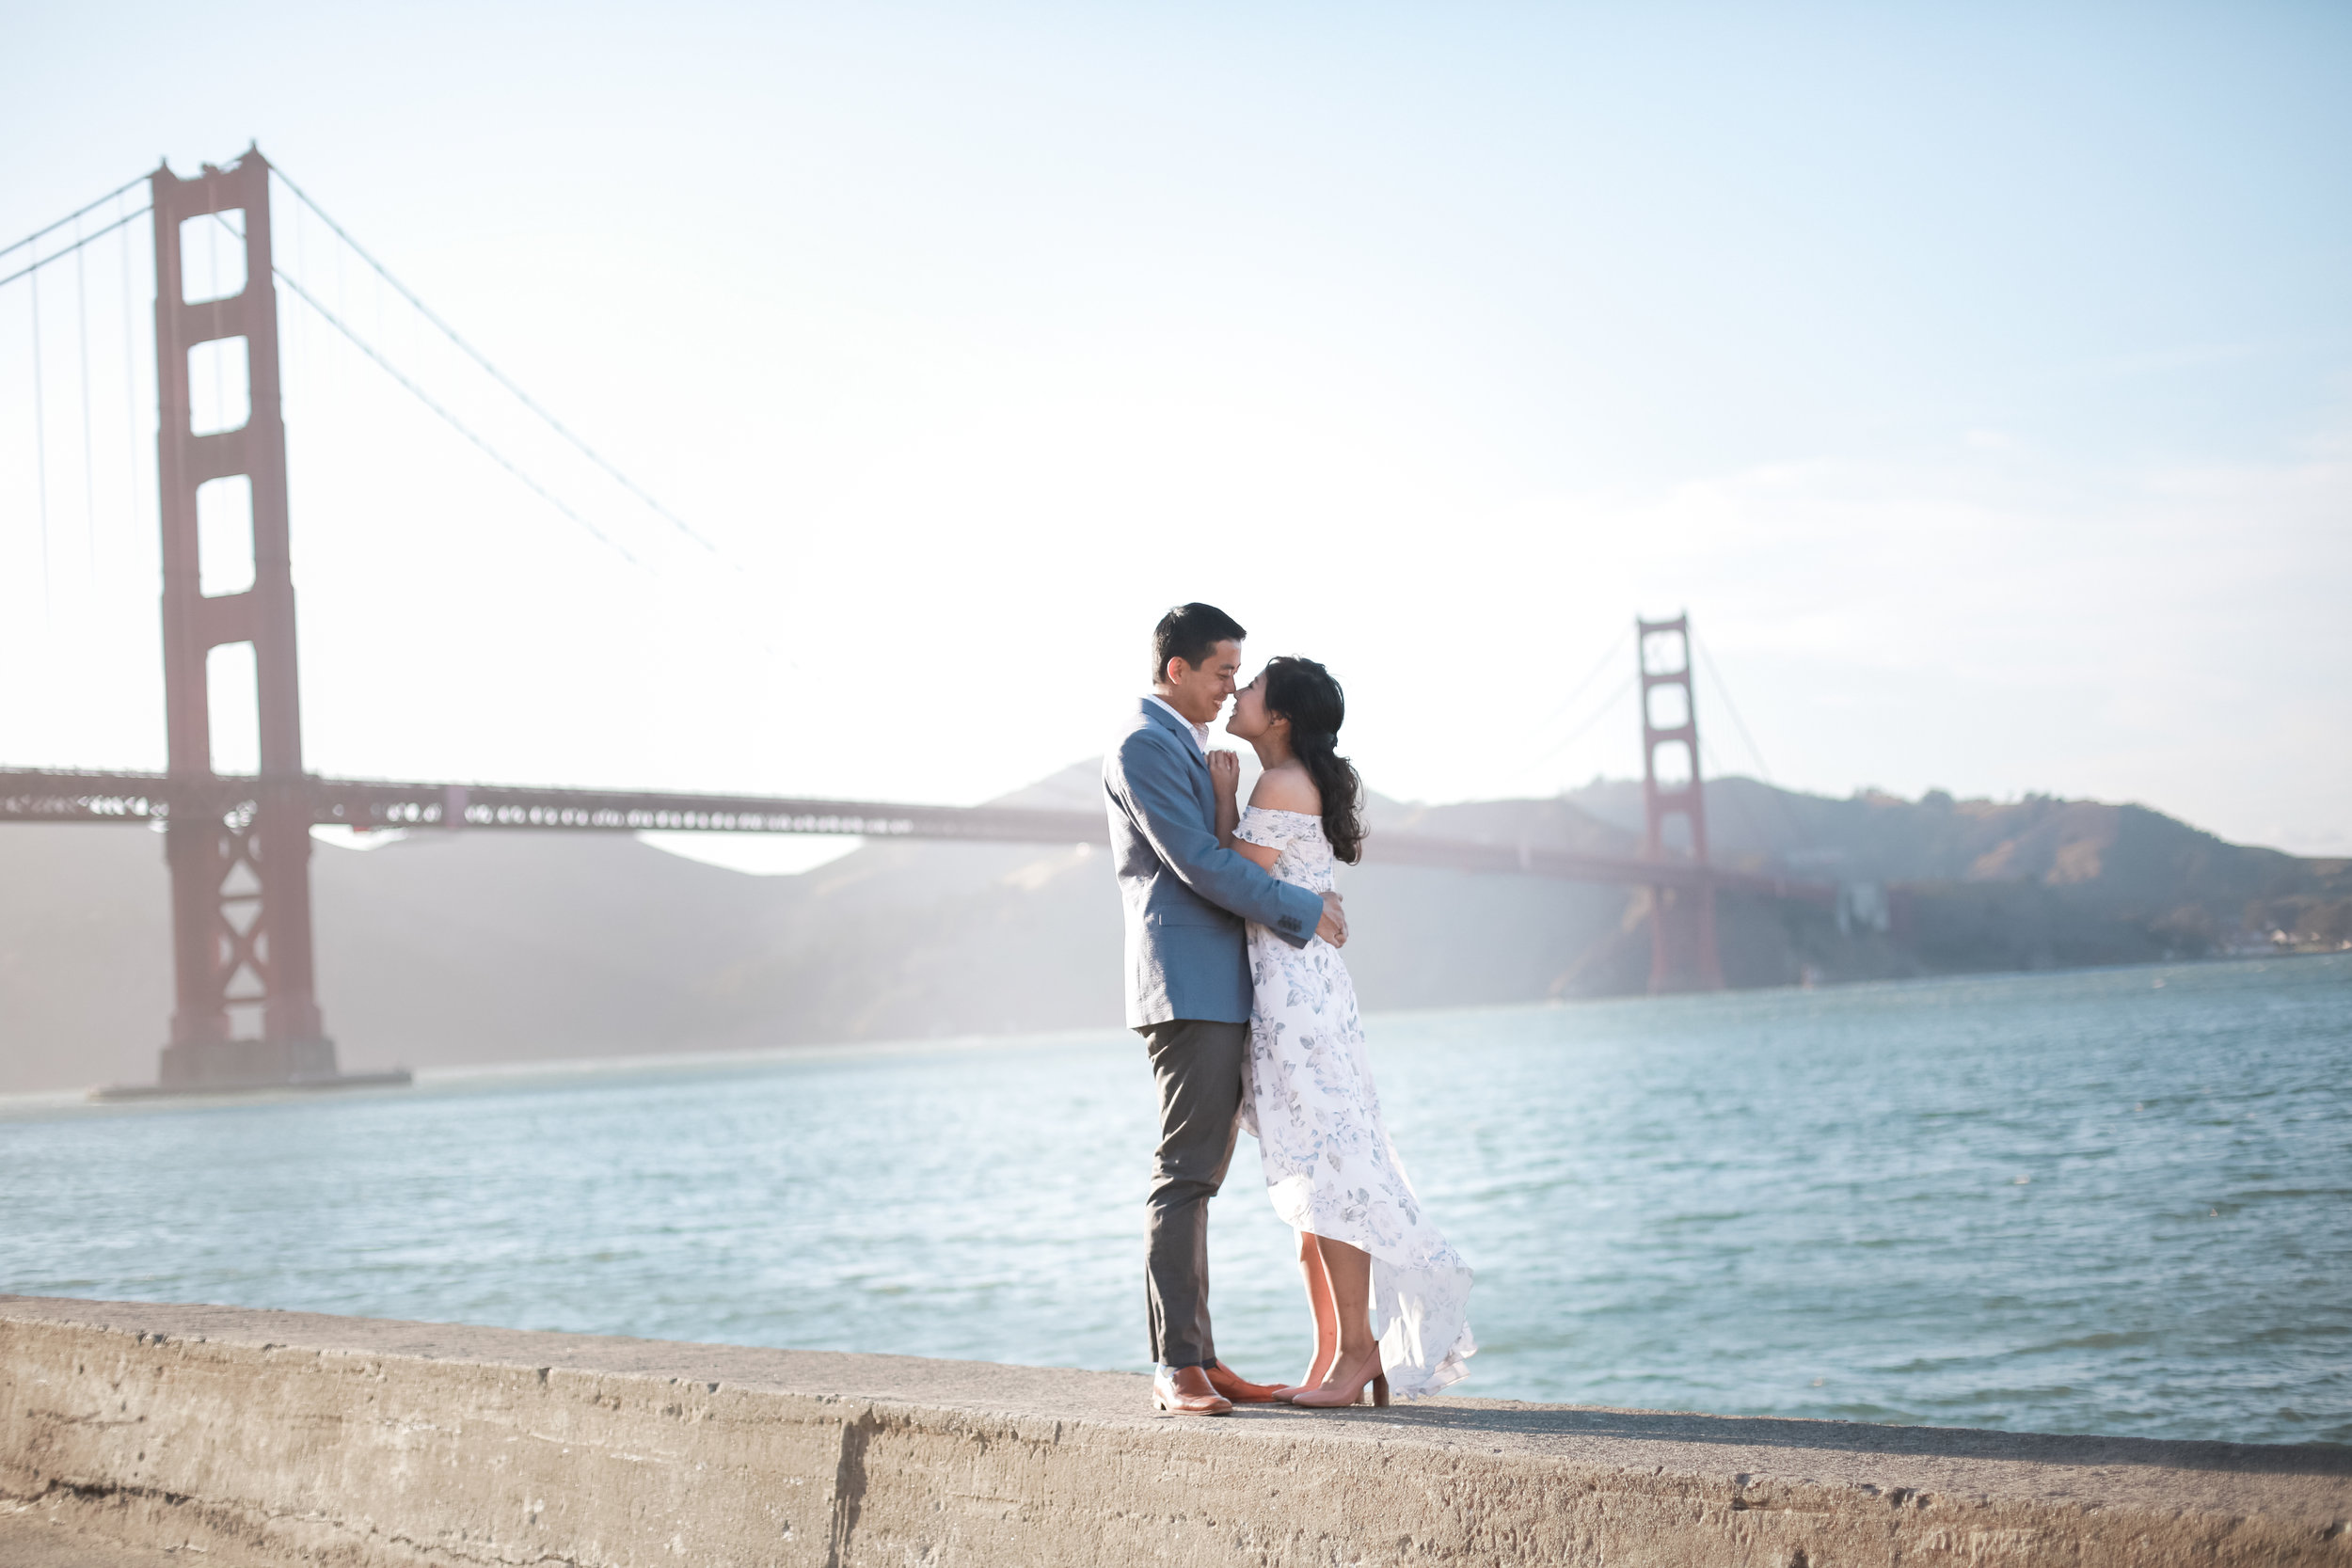 San_Francisco_Engagement_Session_010.jpg